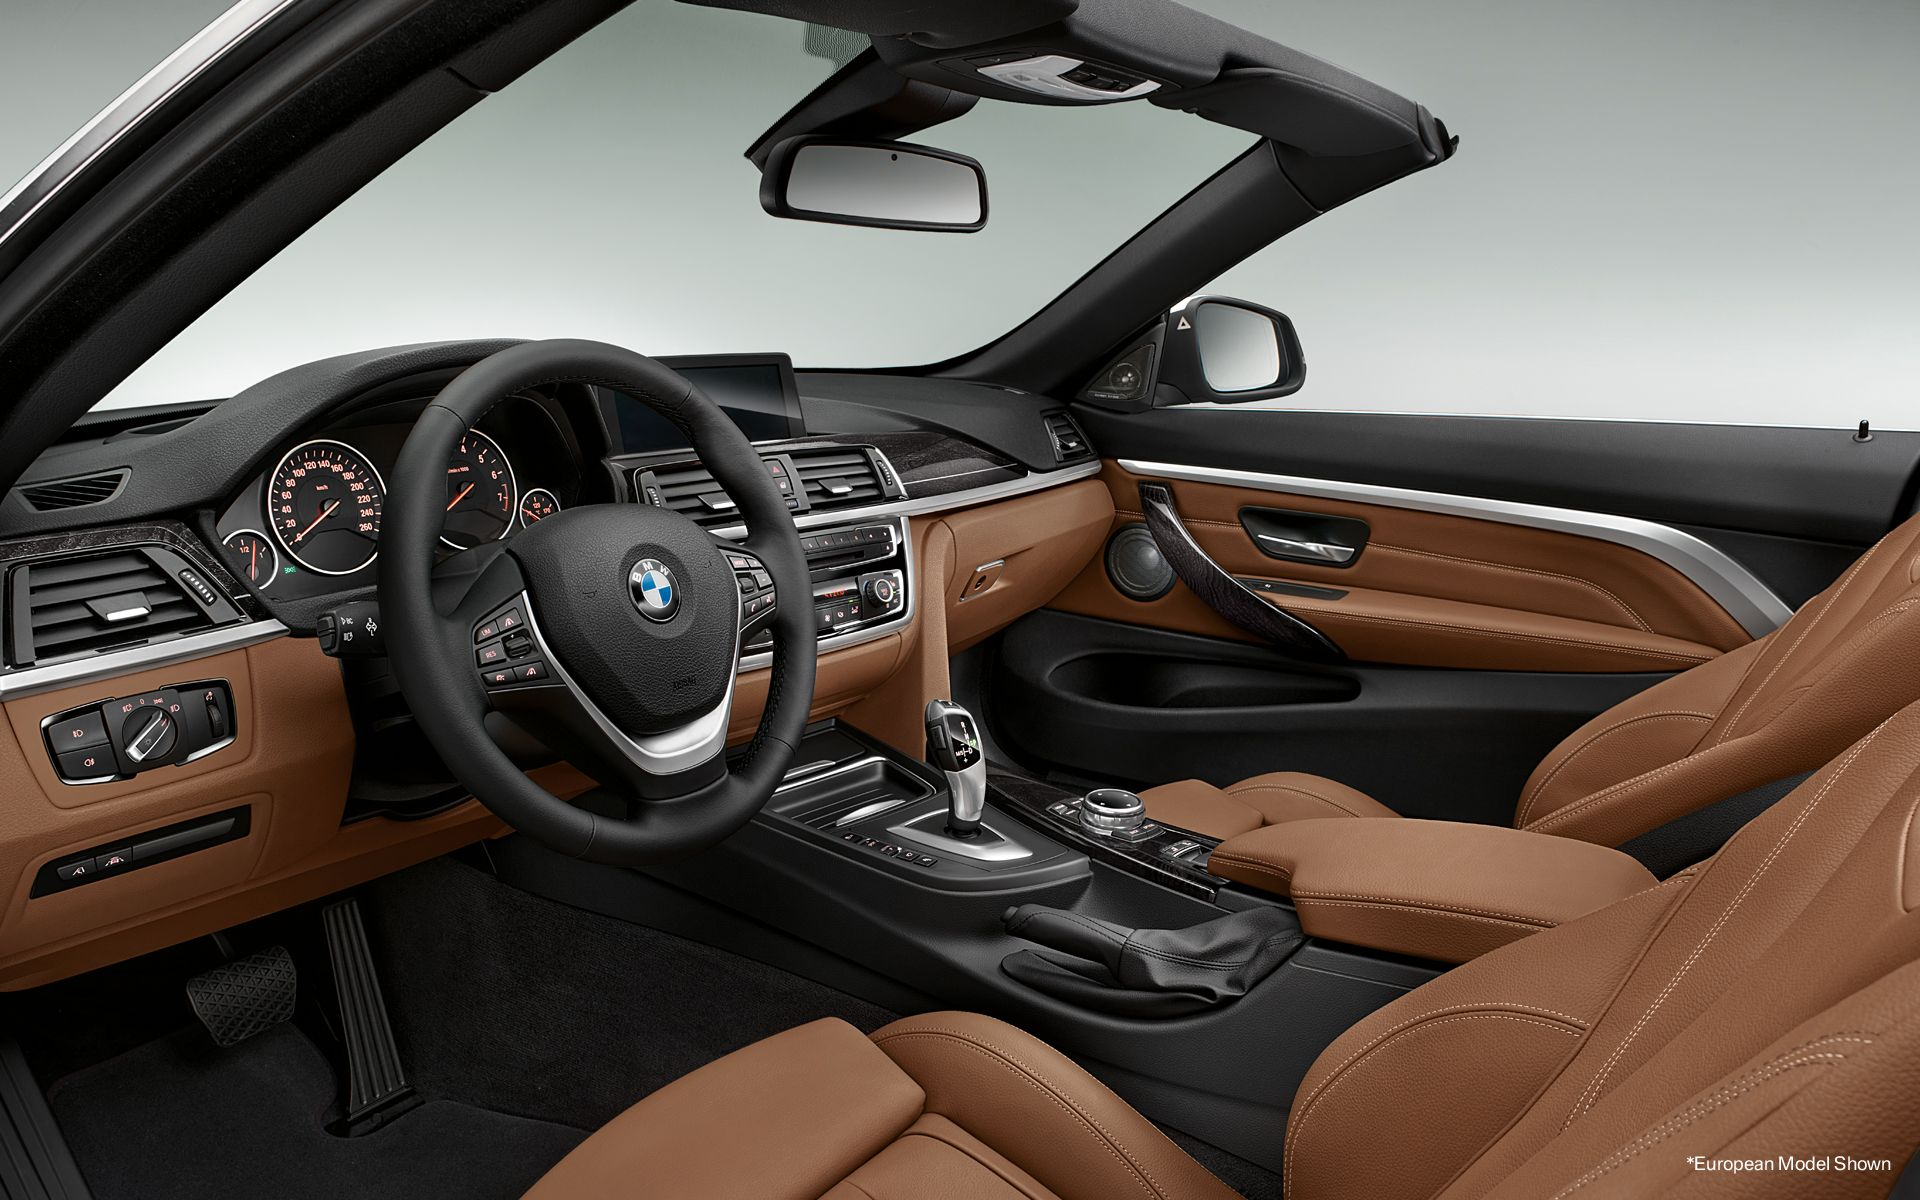 The 4 Series Convertible Interior With Dakota Leather In Saddle